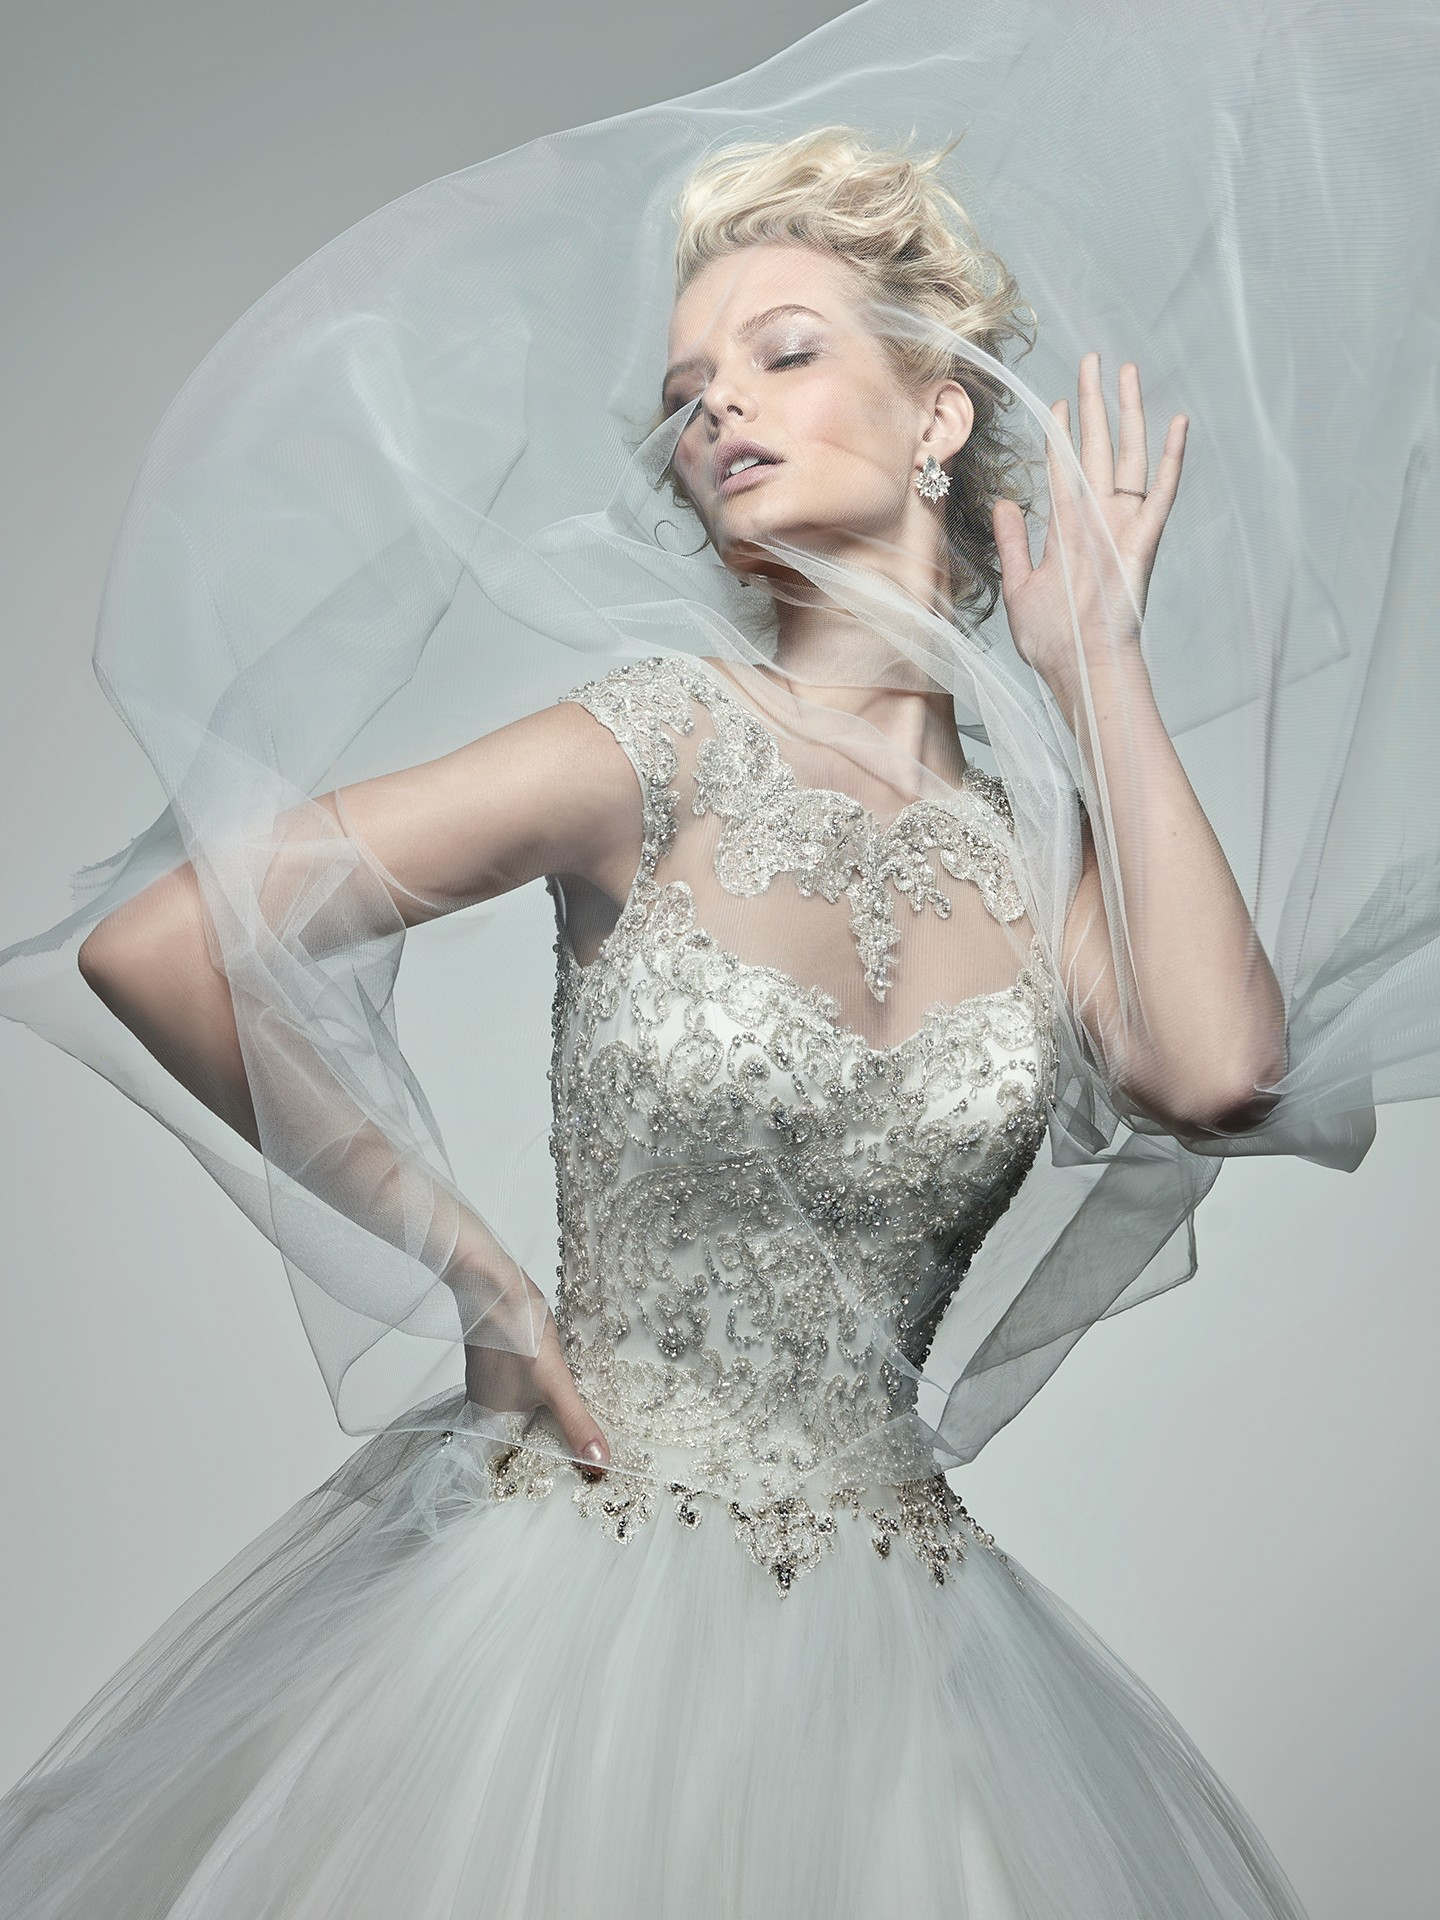 Canapes and Gowns Inspired by International Weddings - Monaco wedding dress by Sottero and Midgley